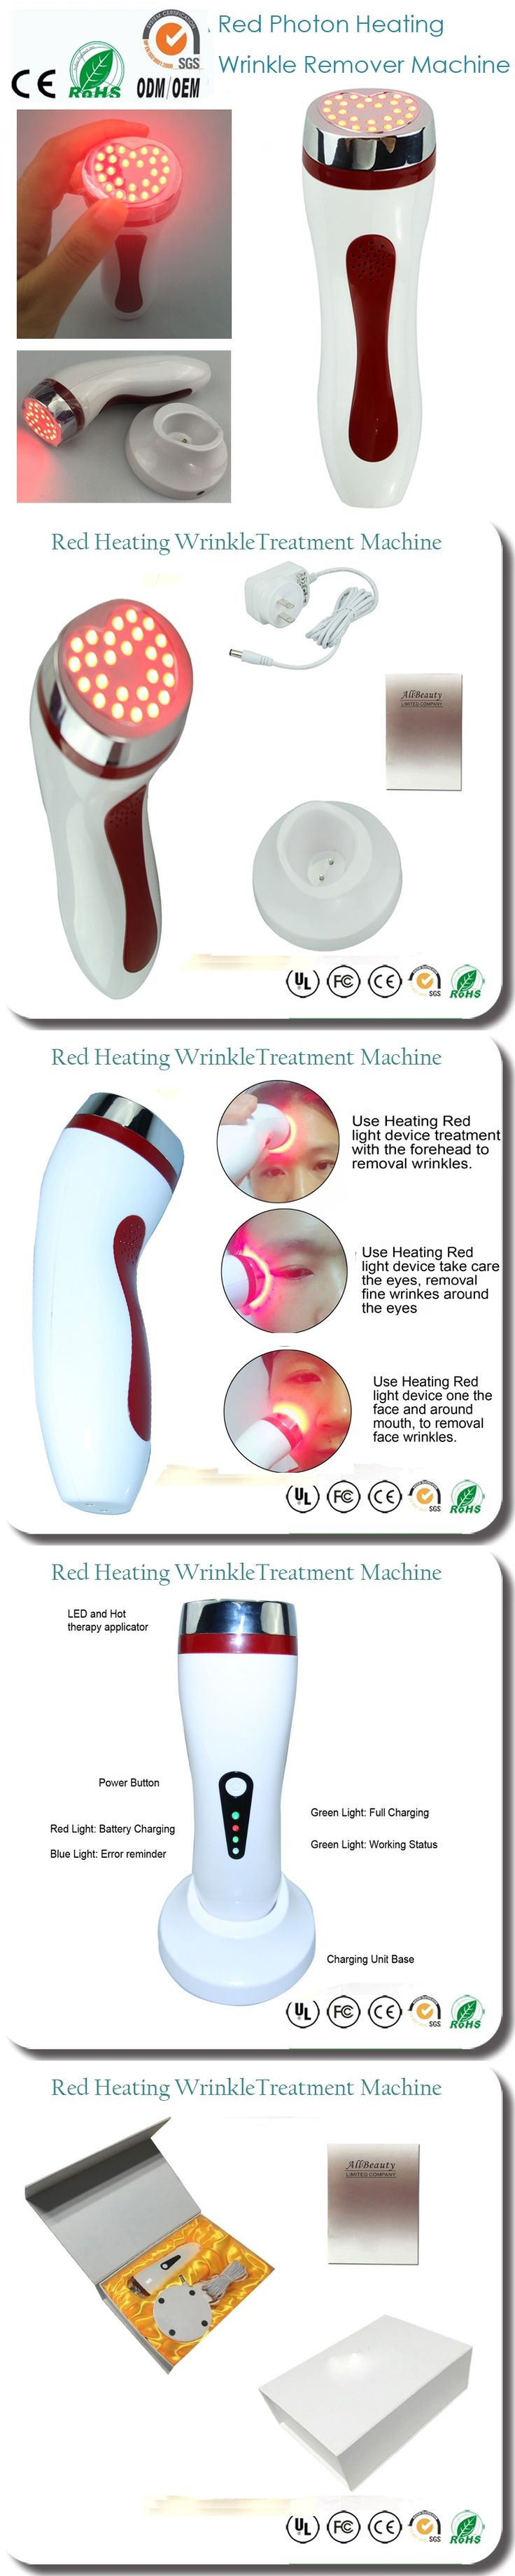 Portable Home Use PDT Red Led Light Photon Therapy Wrinkle Remover Skin Rejuvenation Whitening Firming Beauty Equipments